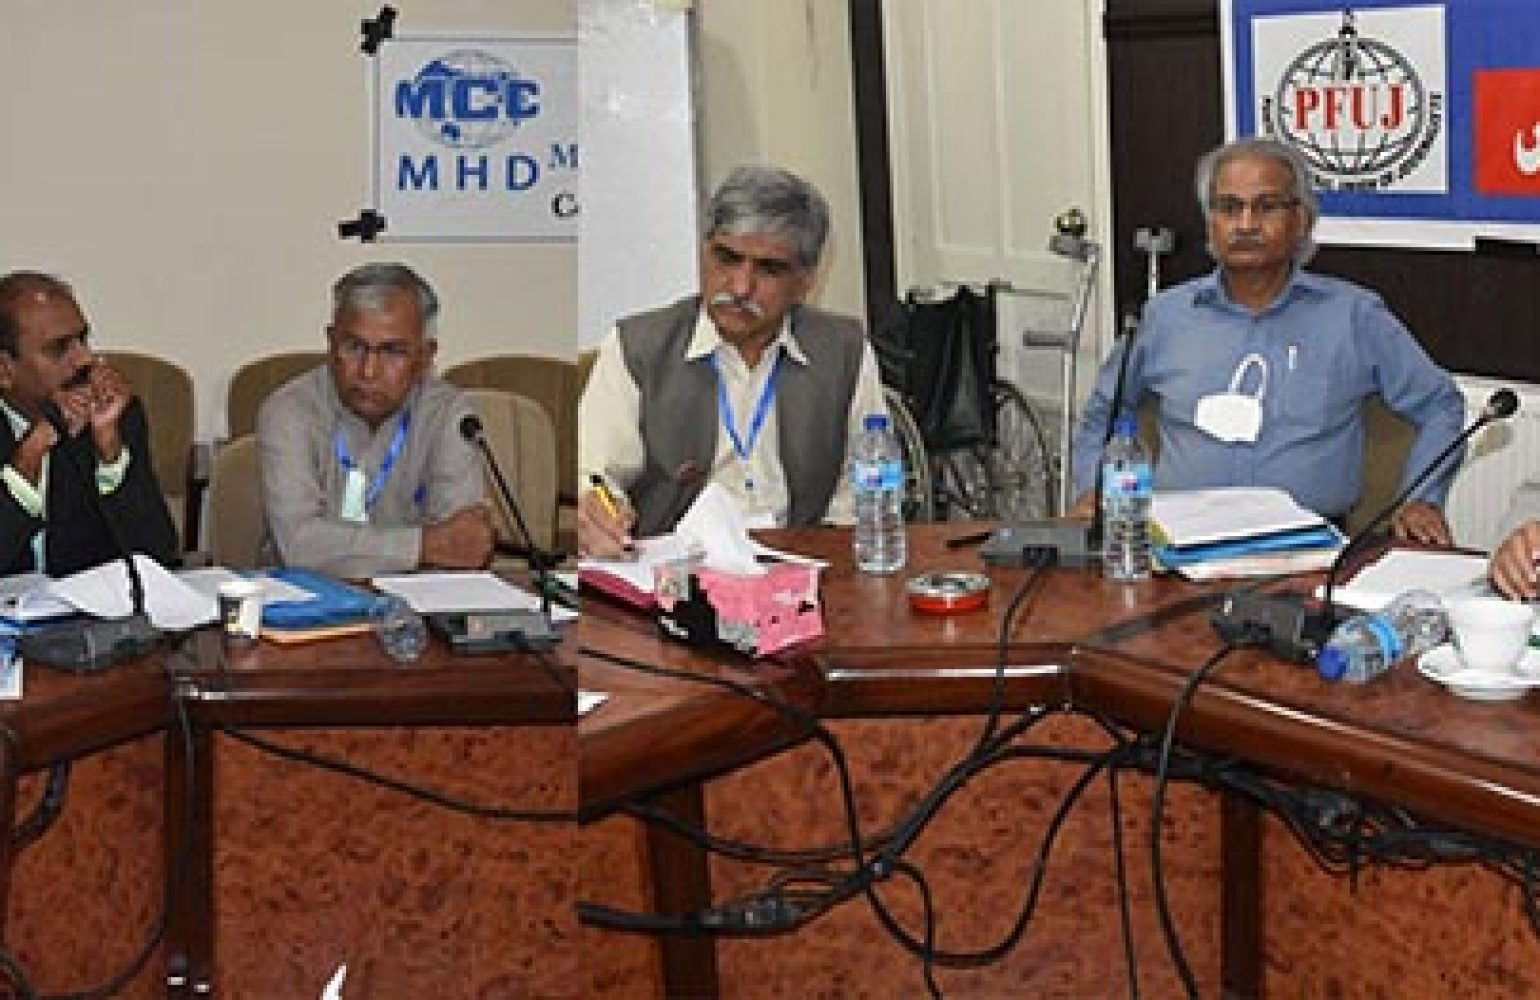 Media Matters for Democracy stands in solidarity with the Federal Executive Council of the Pakistan Federal Union of Journalists and endorses the council's recent demands for press freedoms